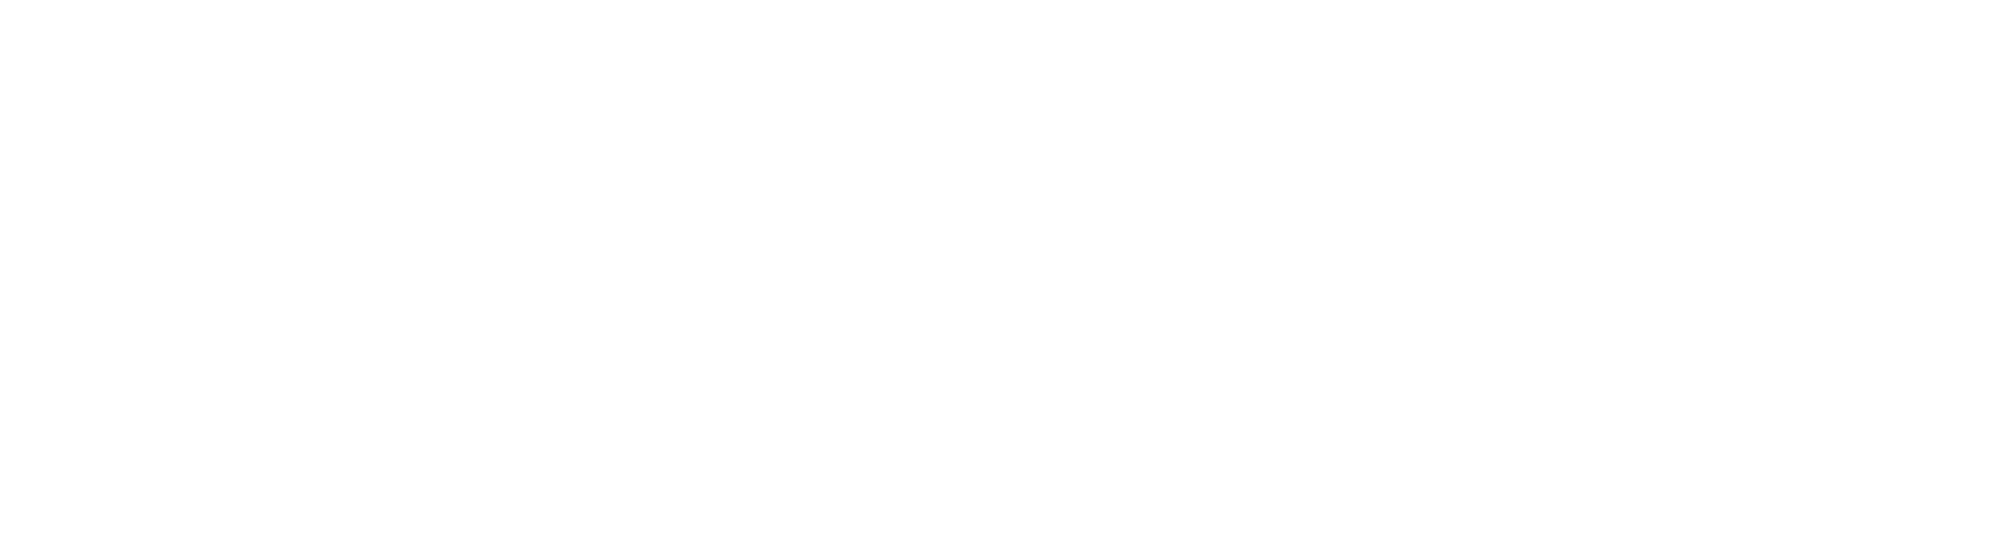 robert nelson photography logo